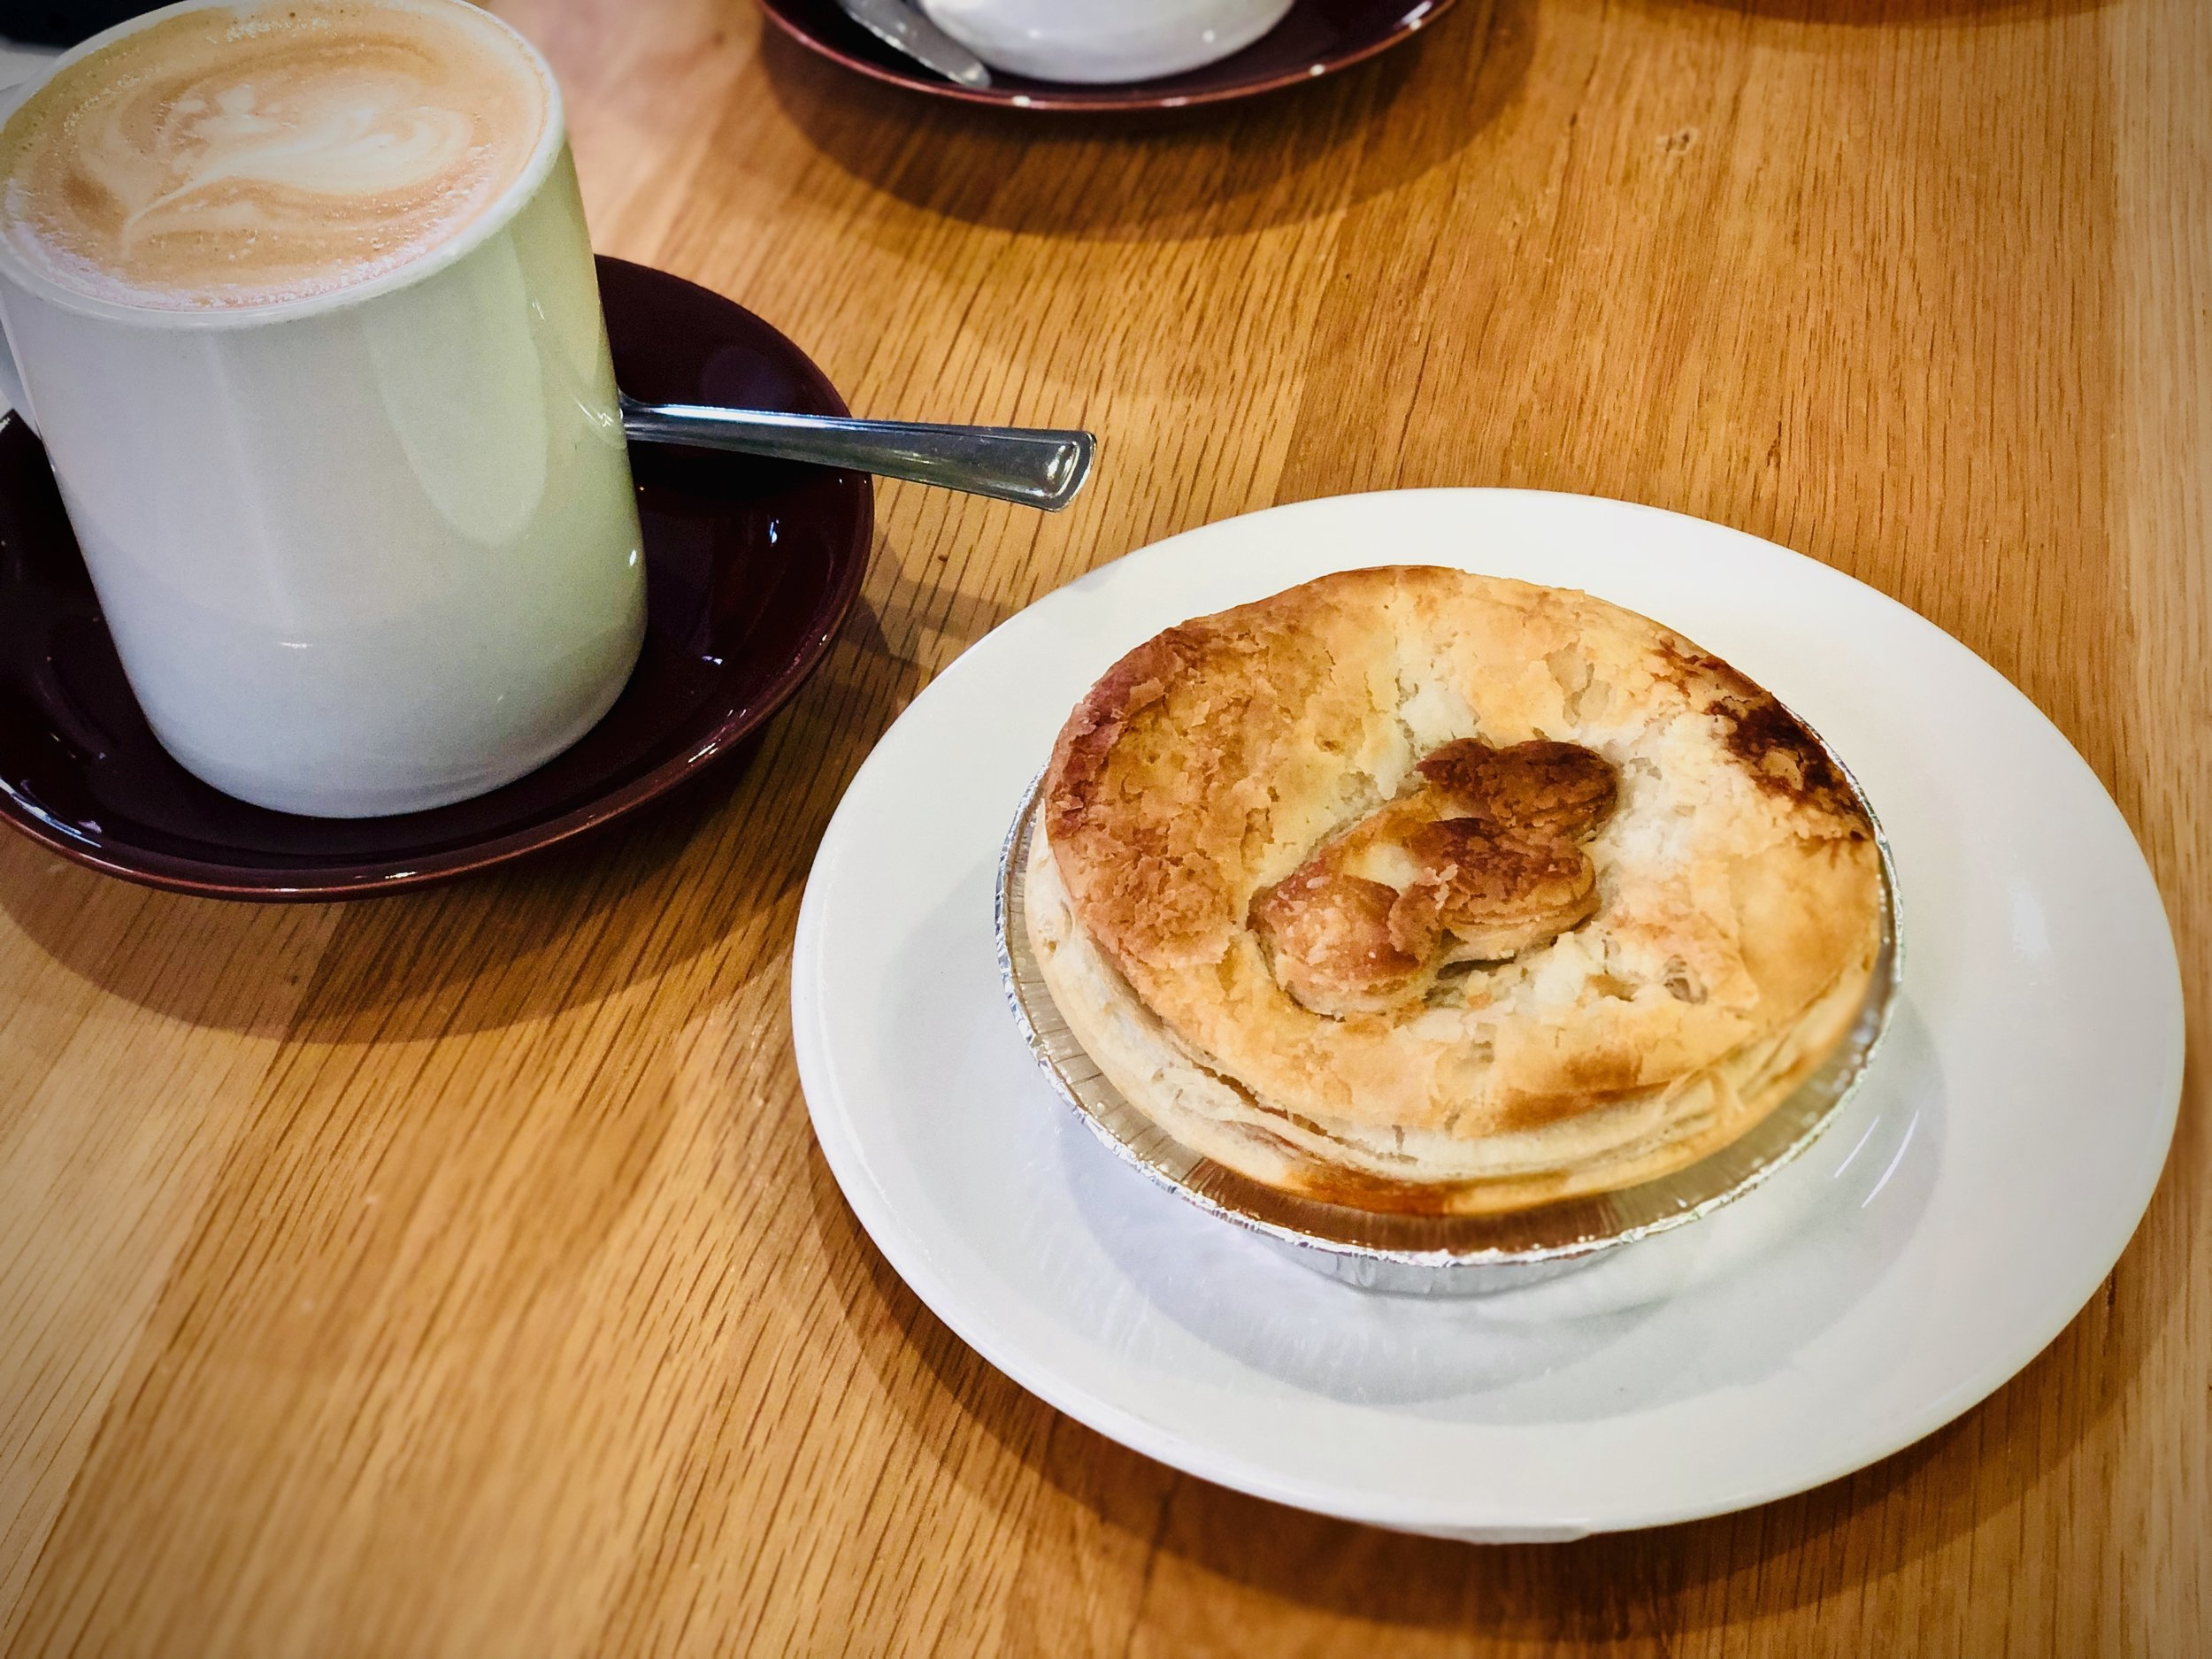 Crazy good scallop pies at Apollo Bay Bakery. Worth a stop over or waking up to!